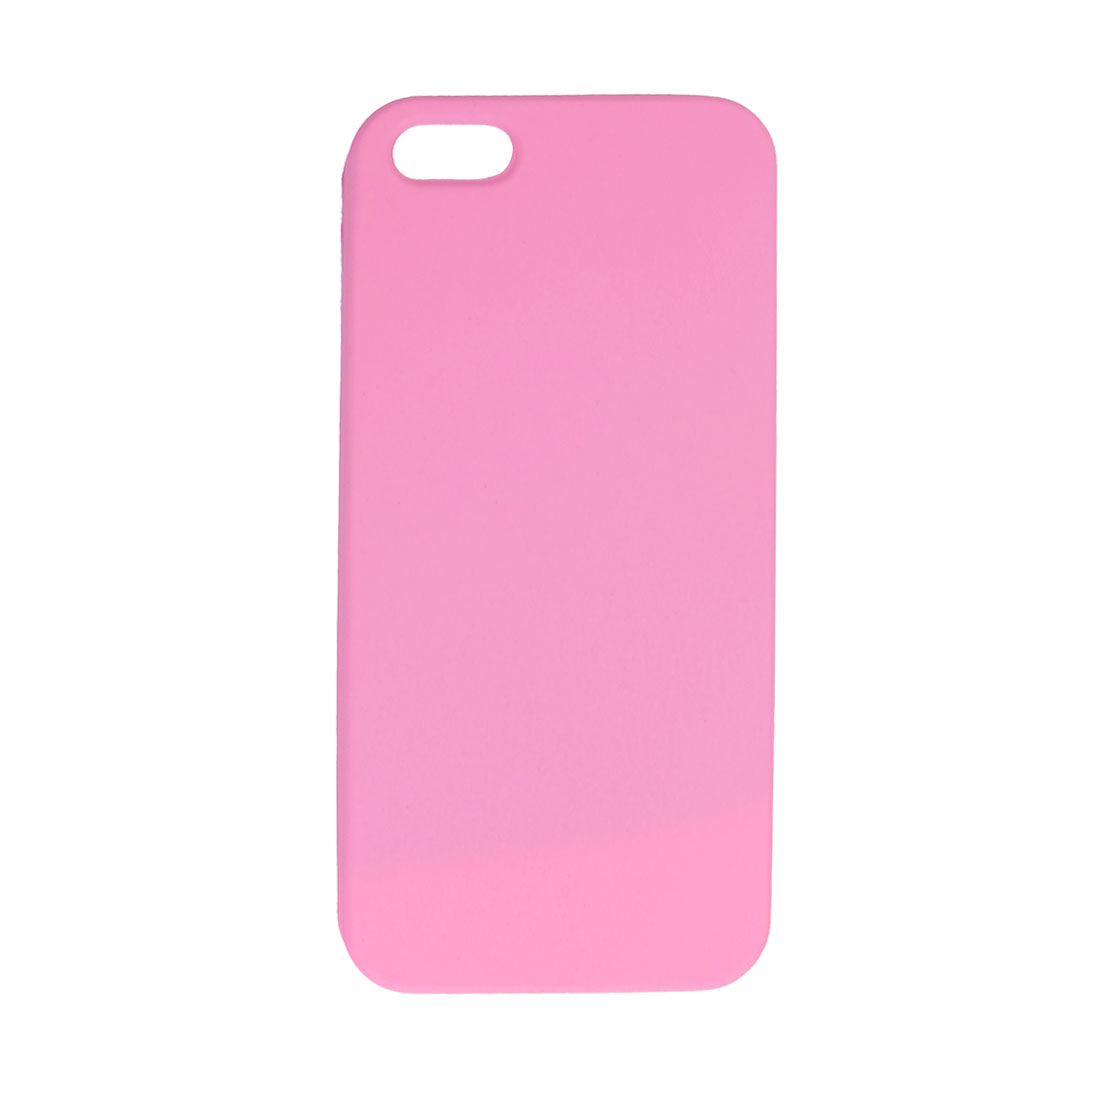 Pink Hard Plastic Protective Phone Back Case for iPhone 5 5G